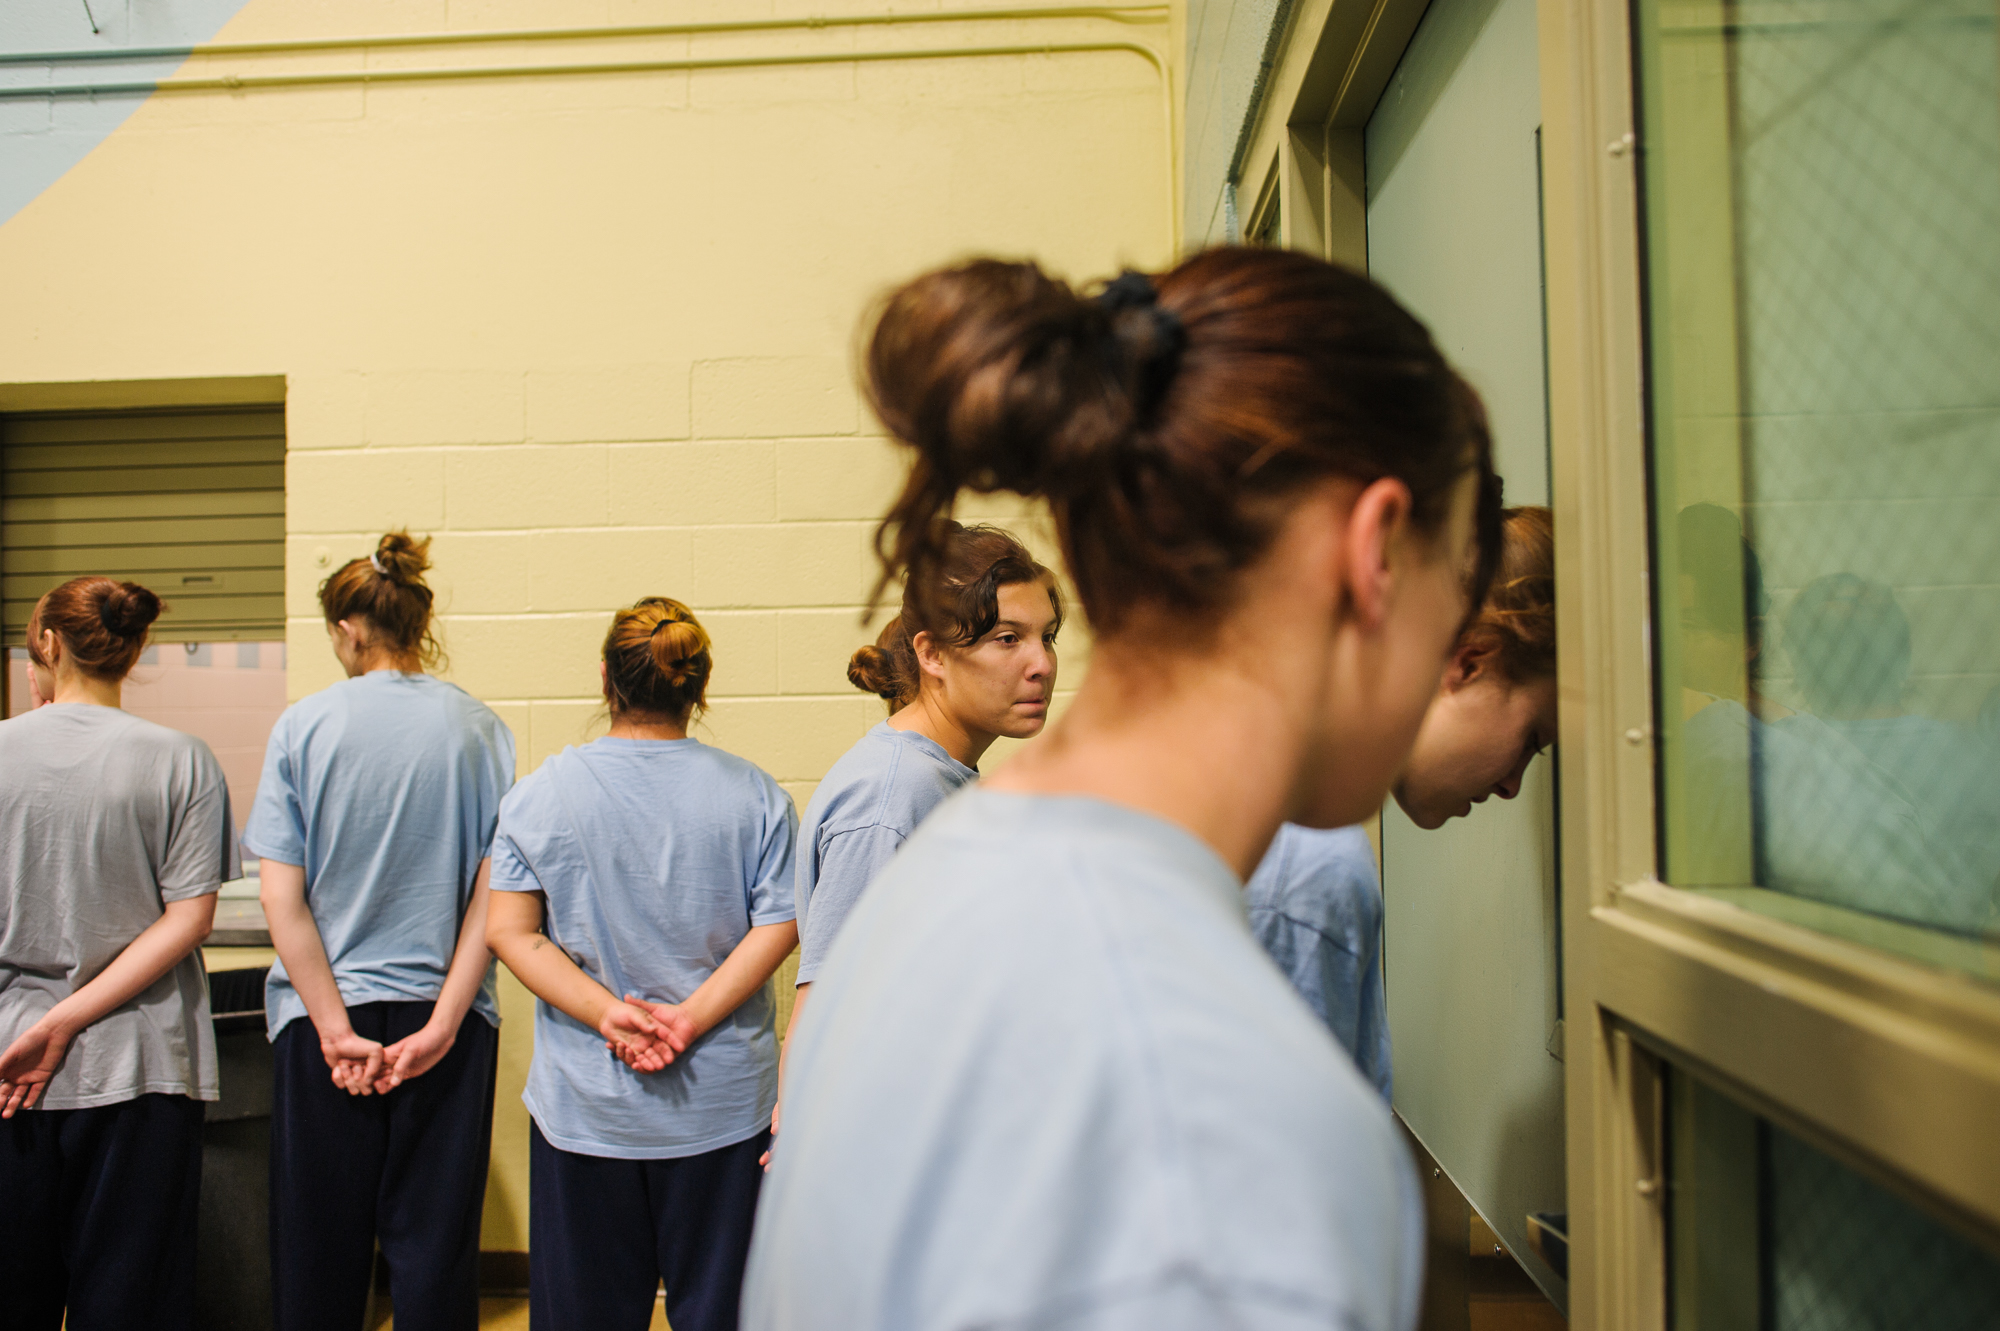 Alysia, age 16, leans her head against a door as she stands in line with other girls in the cafeteria of the juvenile detention center in Albuquerque, NM.